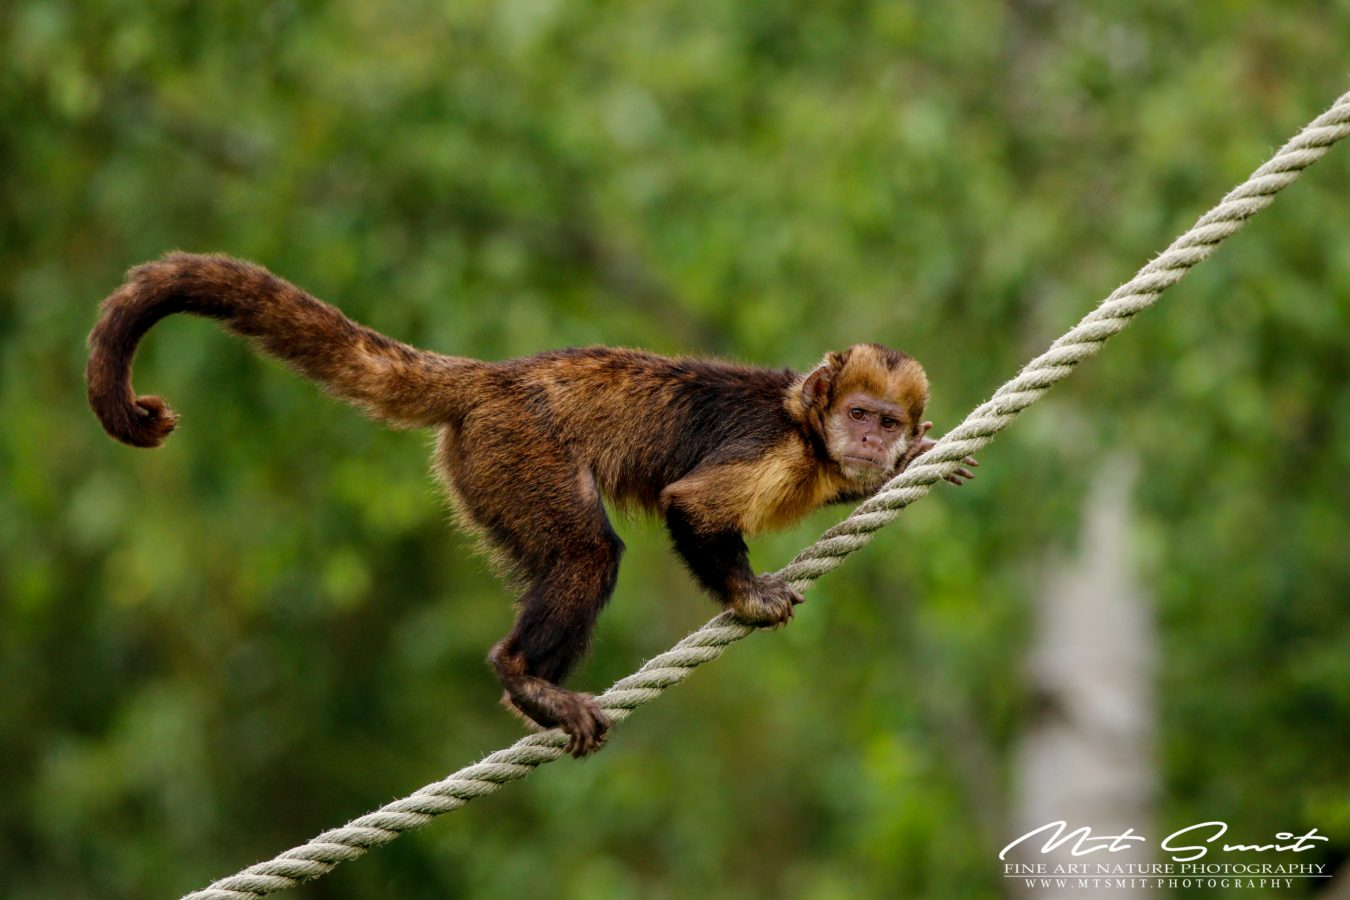 YELLOW BREAST CAPUCHIN